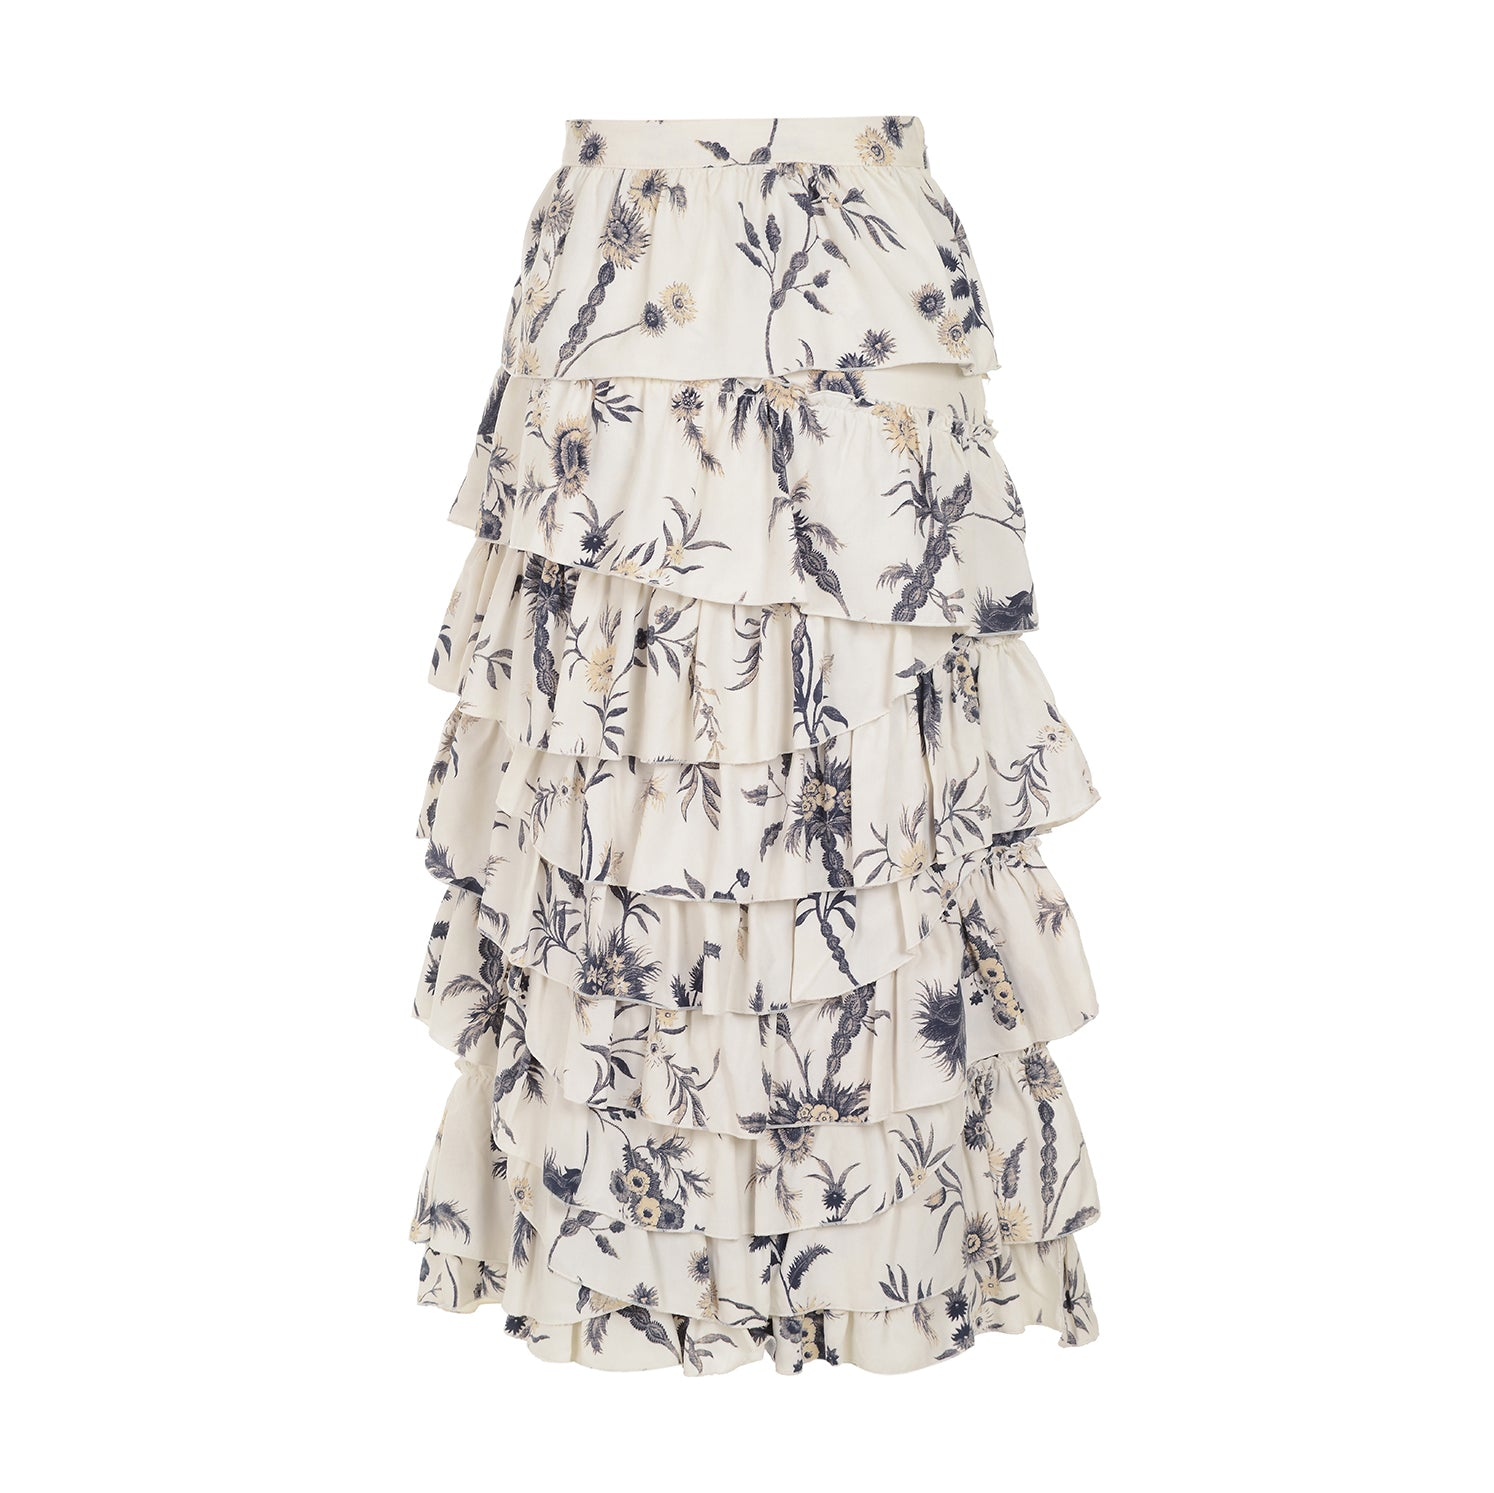 ONLY ONE LEFT- Florentine ruffle midi skirt